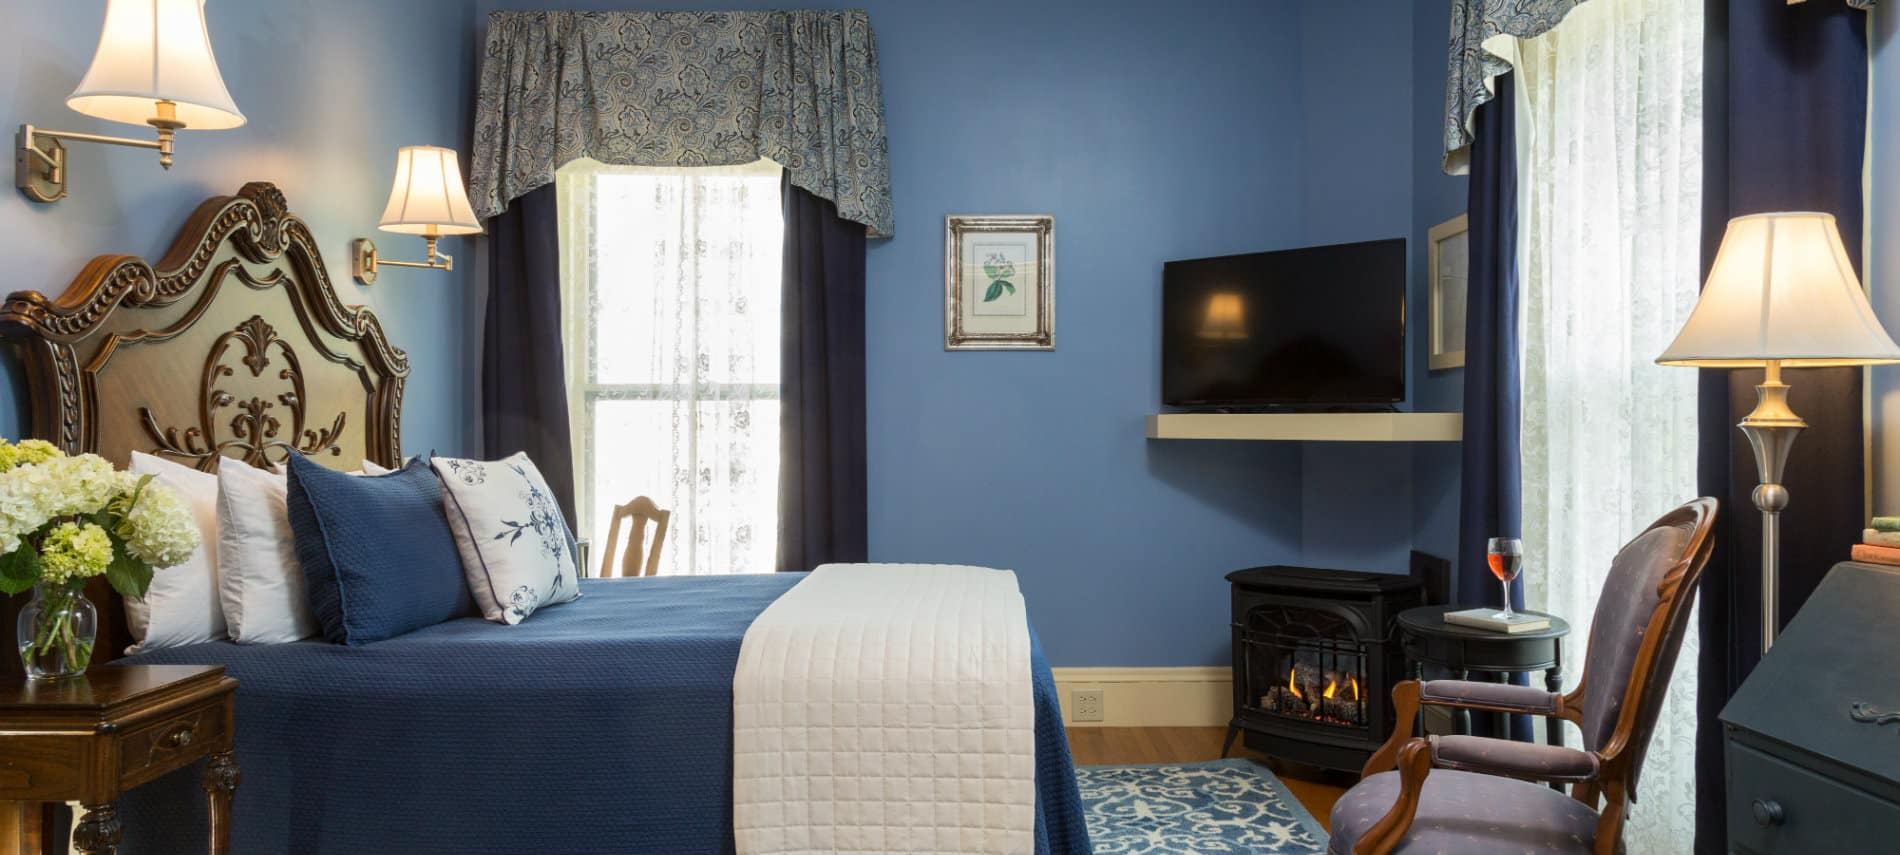 A blue bedroom with an antique wooden bed, a TV, desk, side chair and a small iron fireplace.